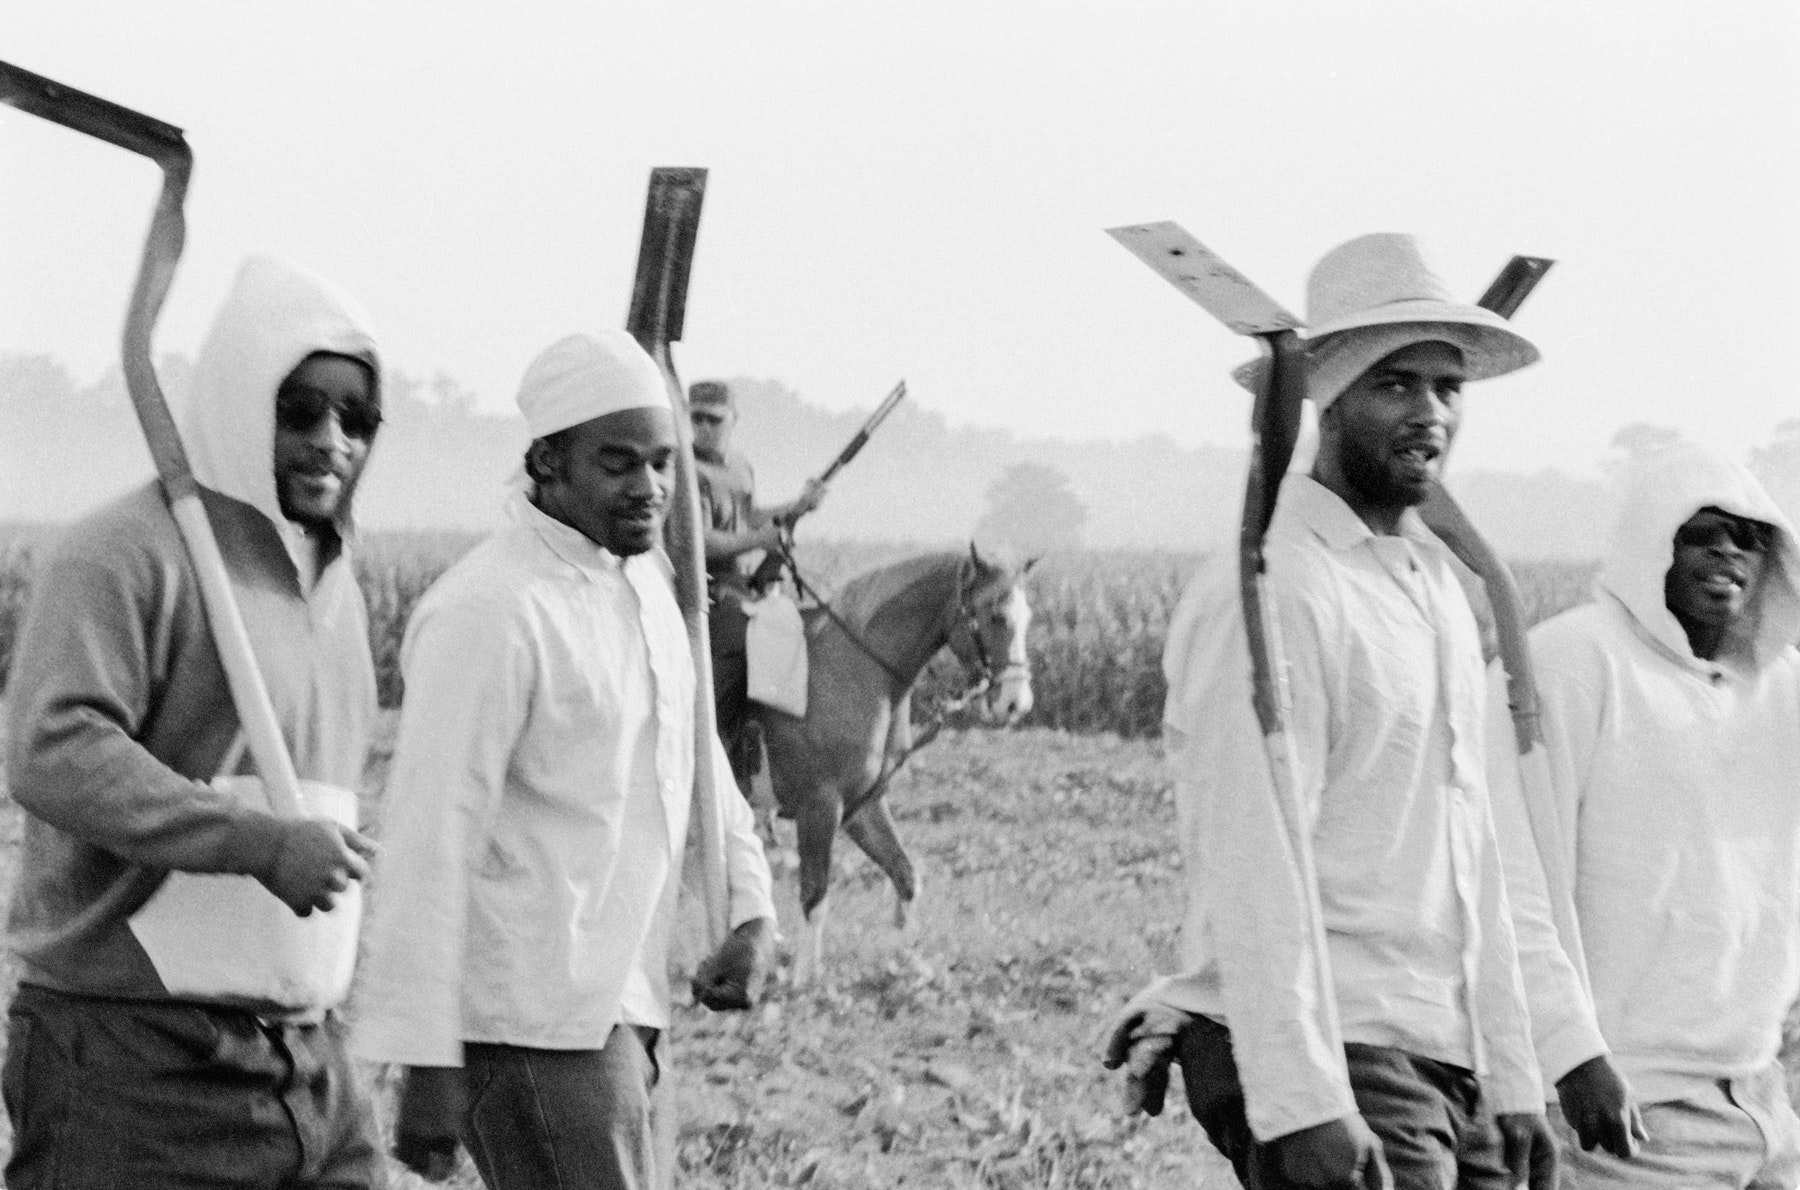 Chandra McCormick, Men going to work in the fields of Angola, 2004. Courtesy the artist.